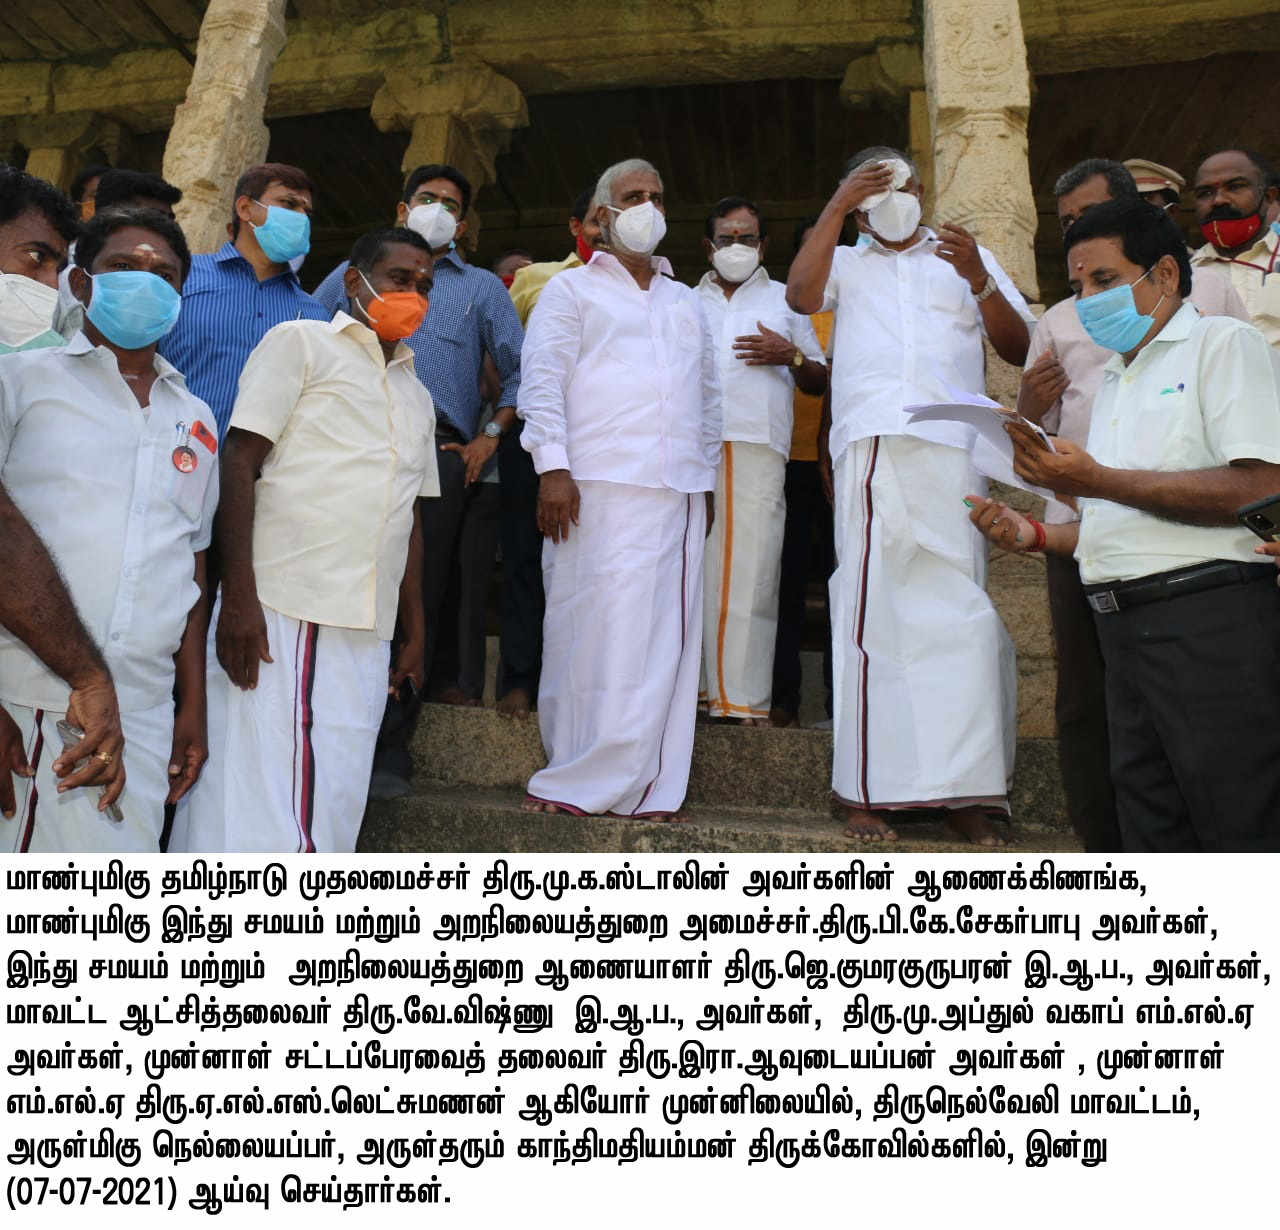 Hon'ble Minister of HR&CE inspected the Arulmigu Nellaiappar temple